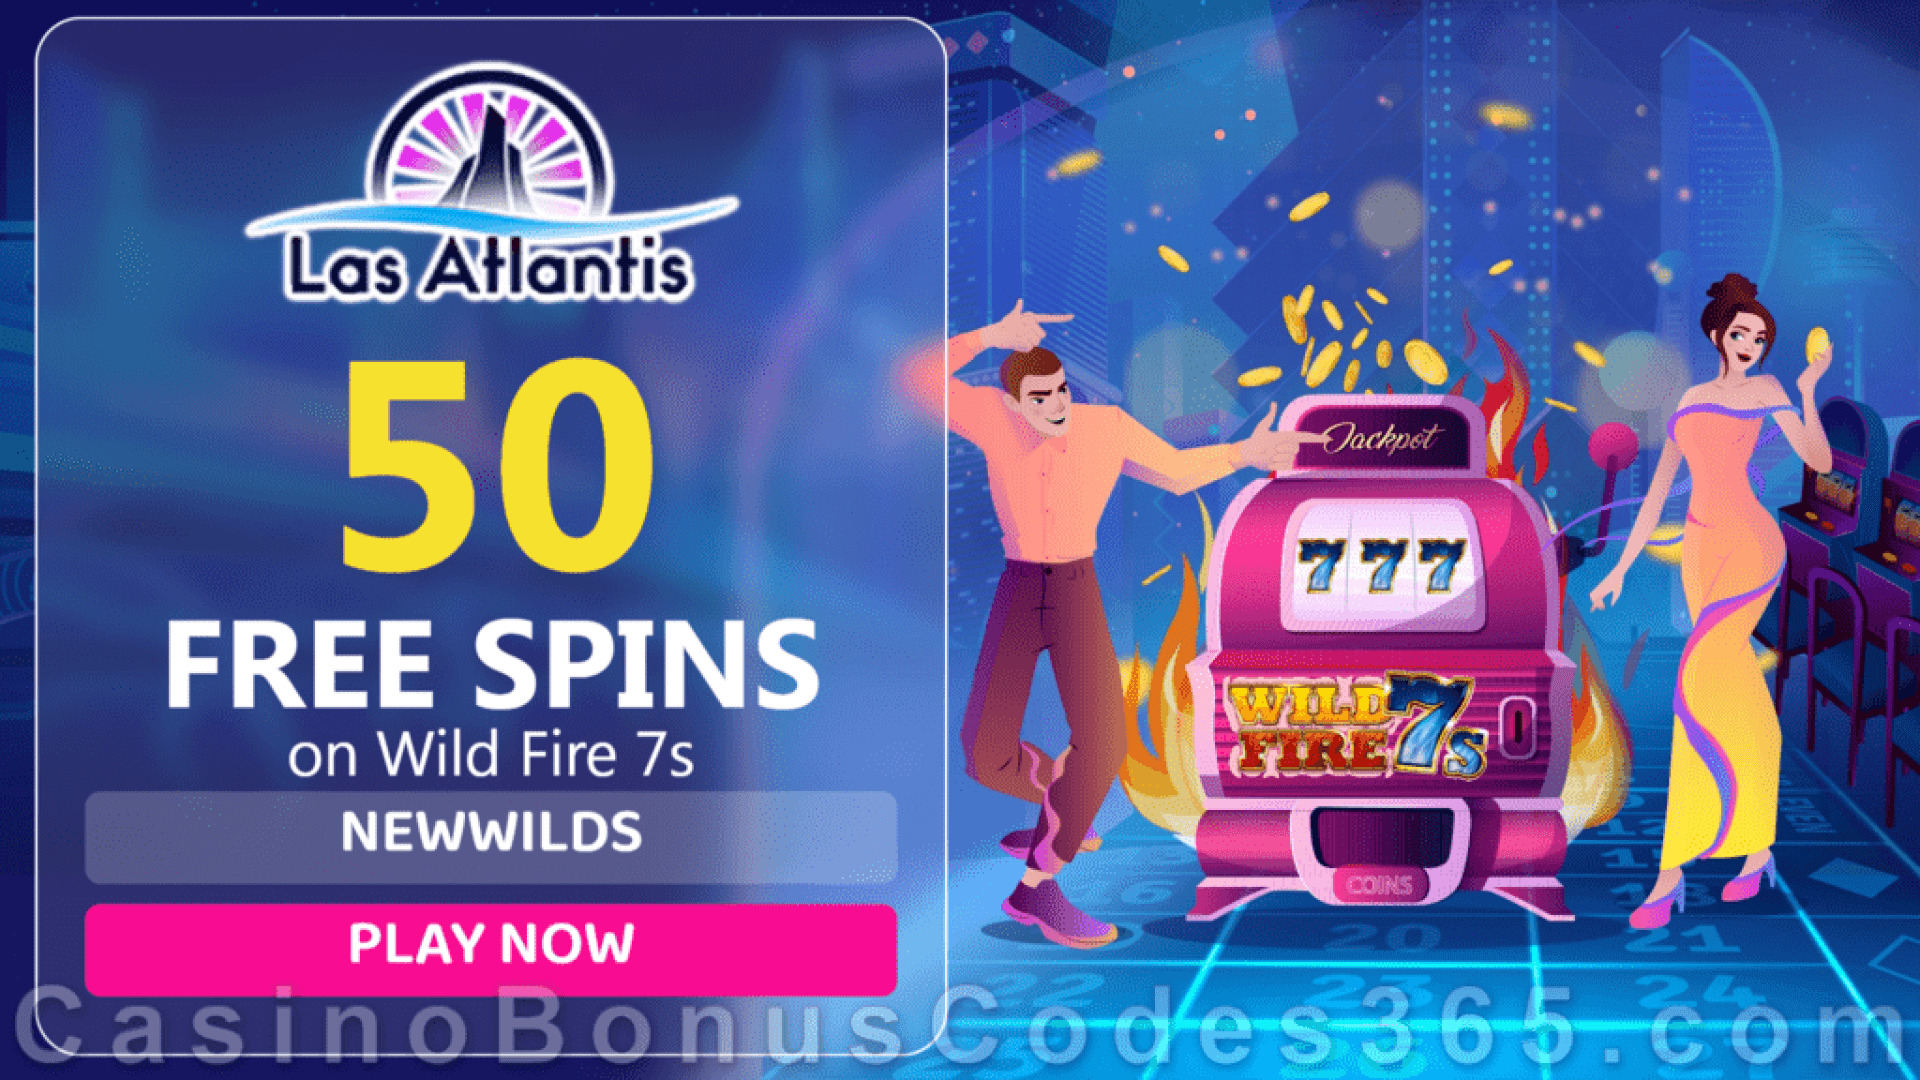 Las Atlantis Casino 50 FREE Spins on Wild Fire 7s New RTG Game Special Deal